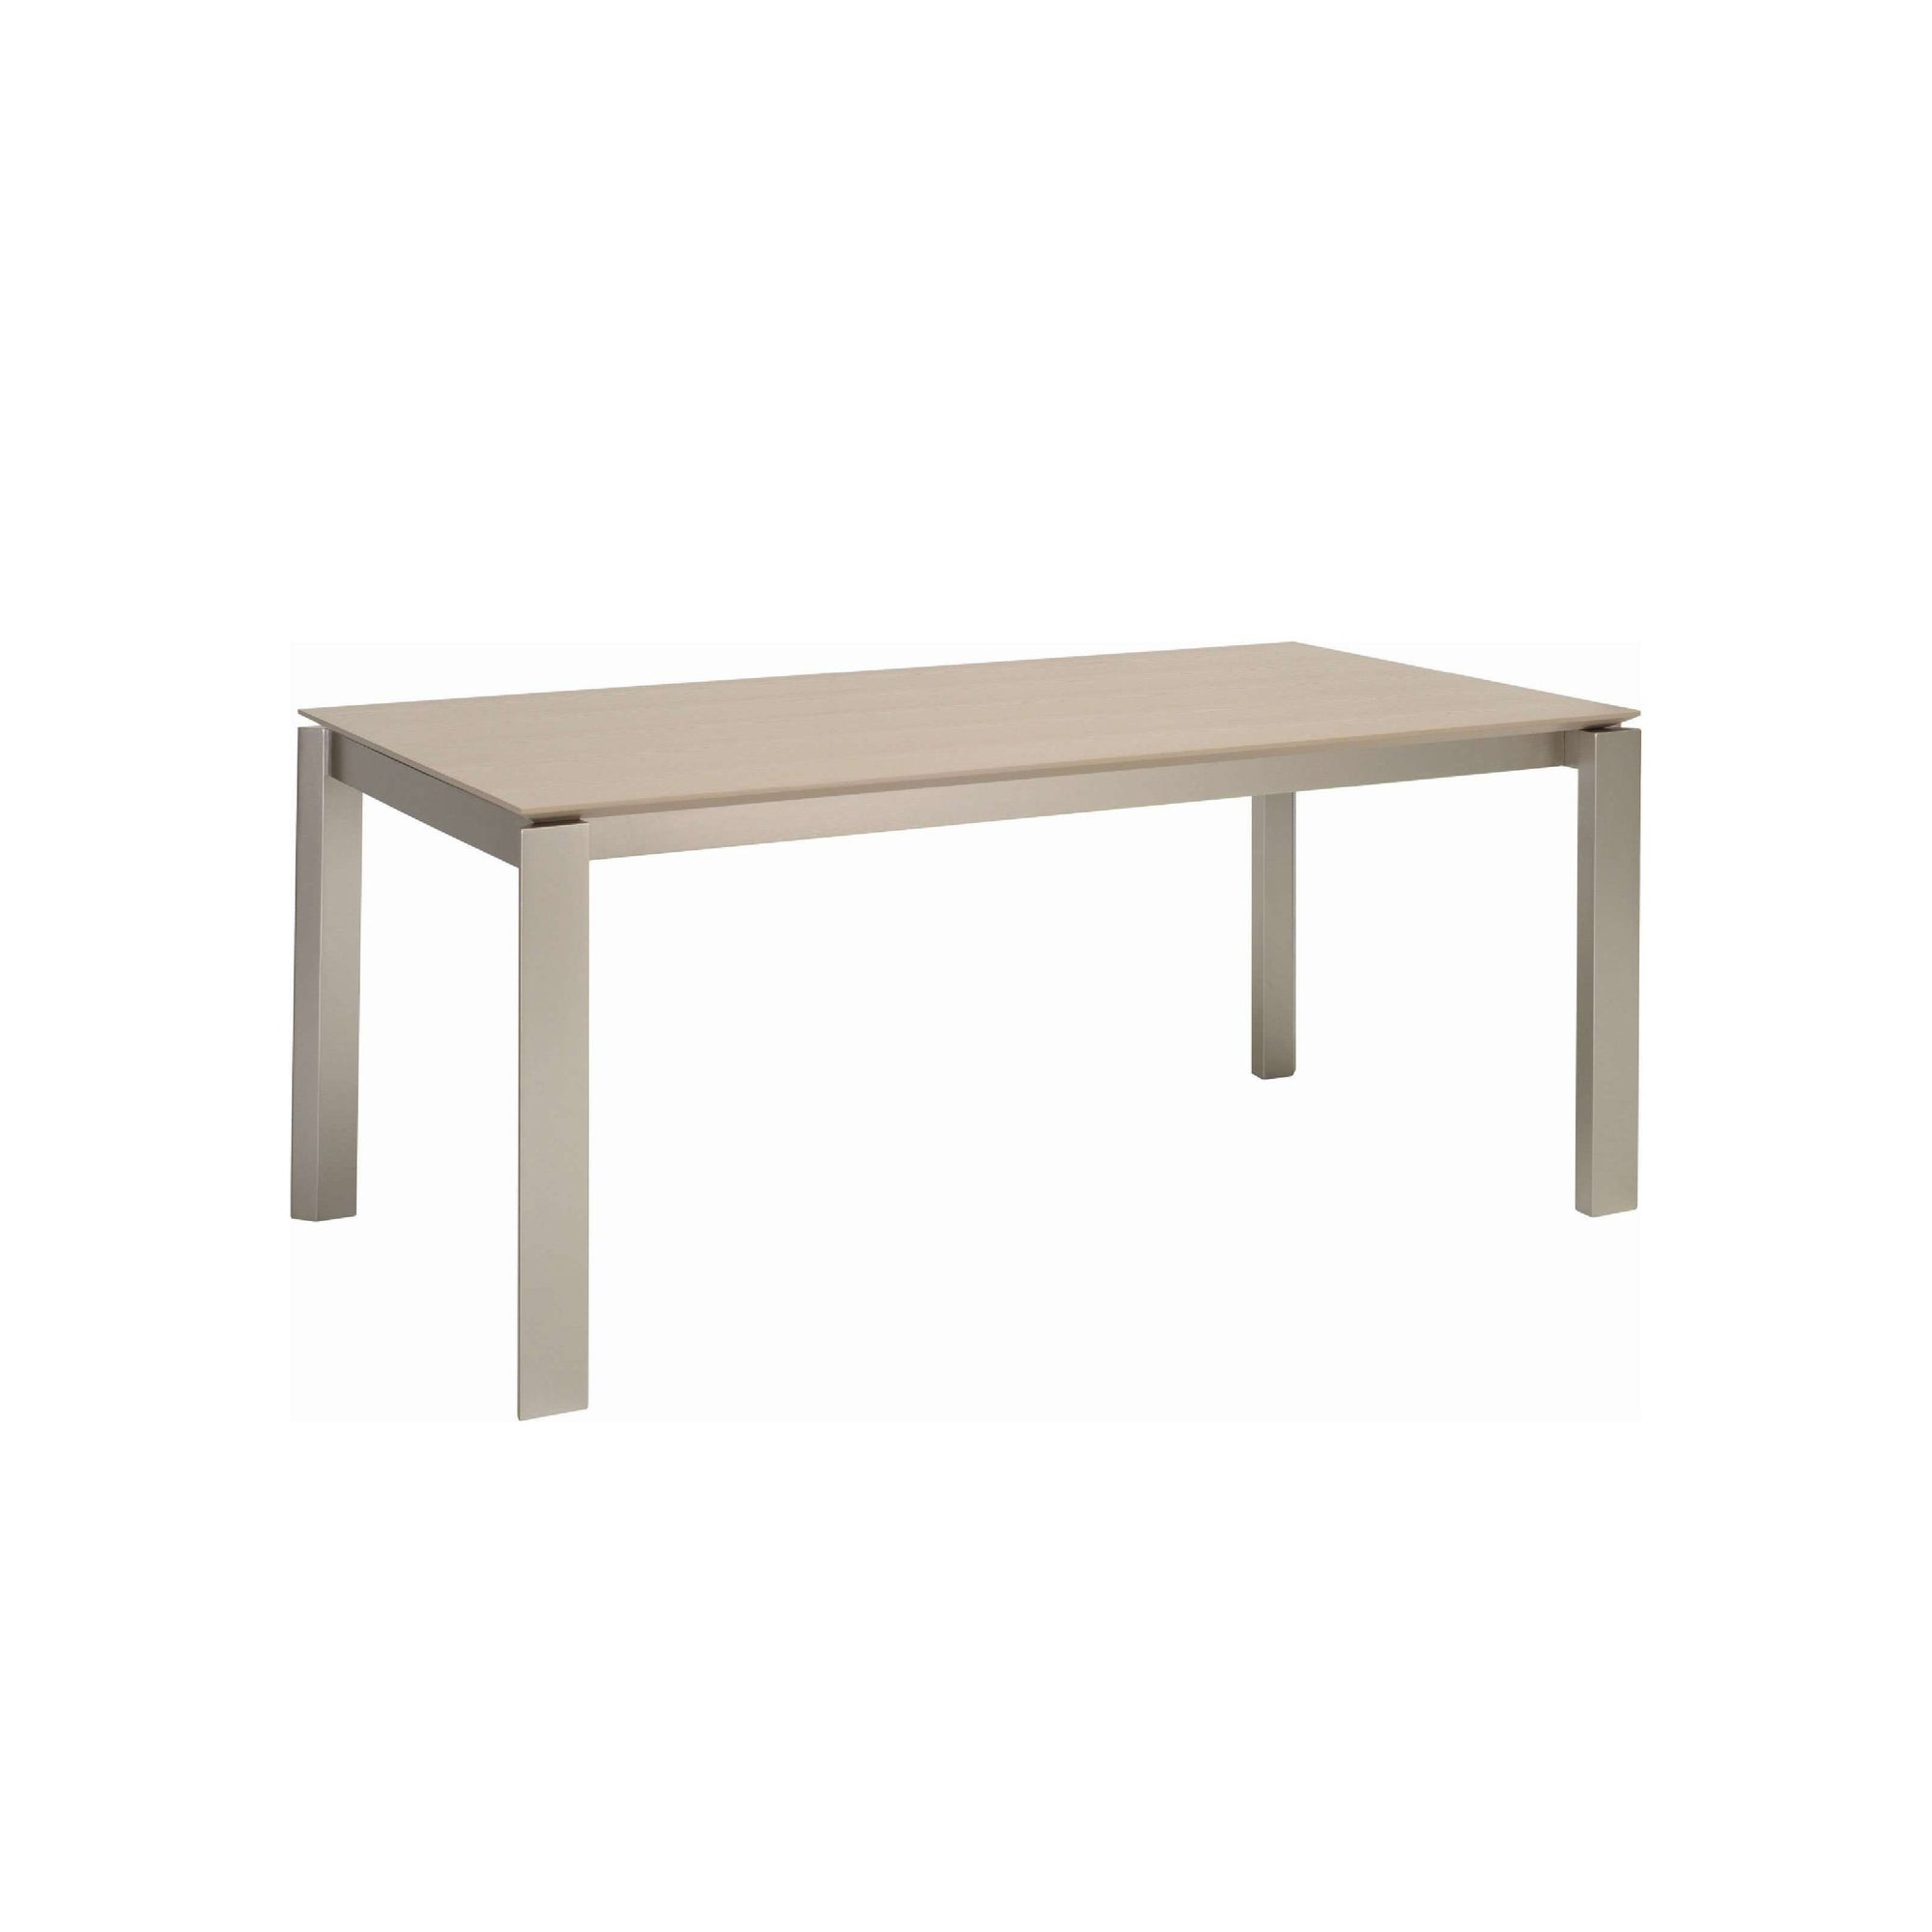 ELWOOD 1.8m Dining Table in Metalic Colour Leg, Taupe Grey Colour Top